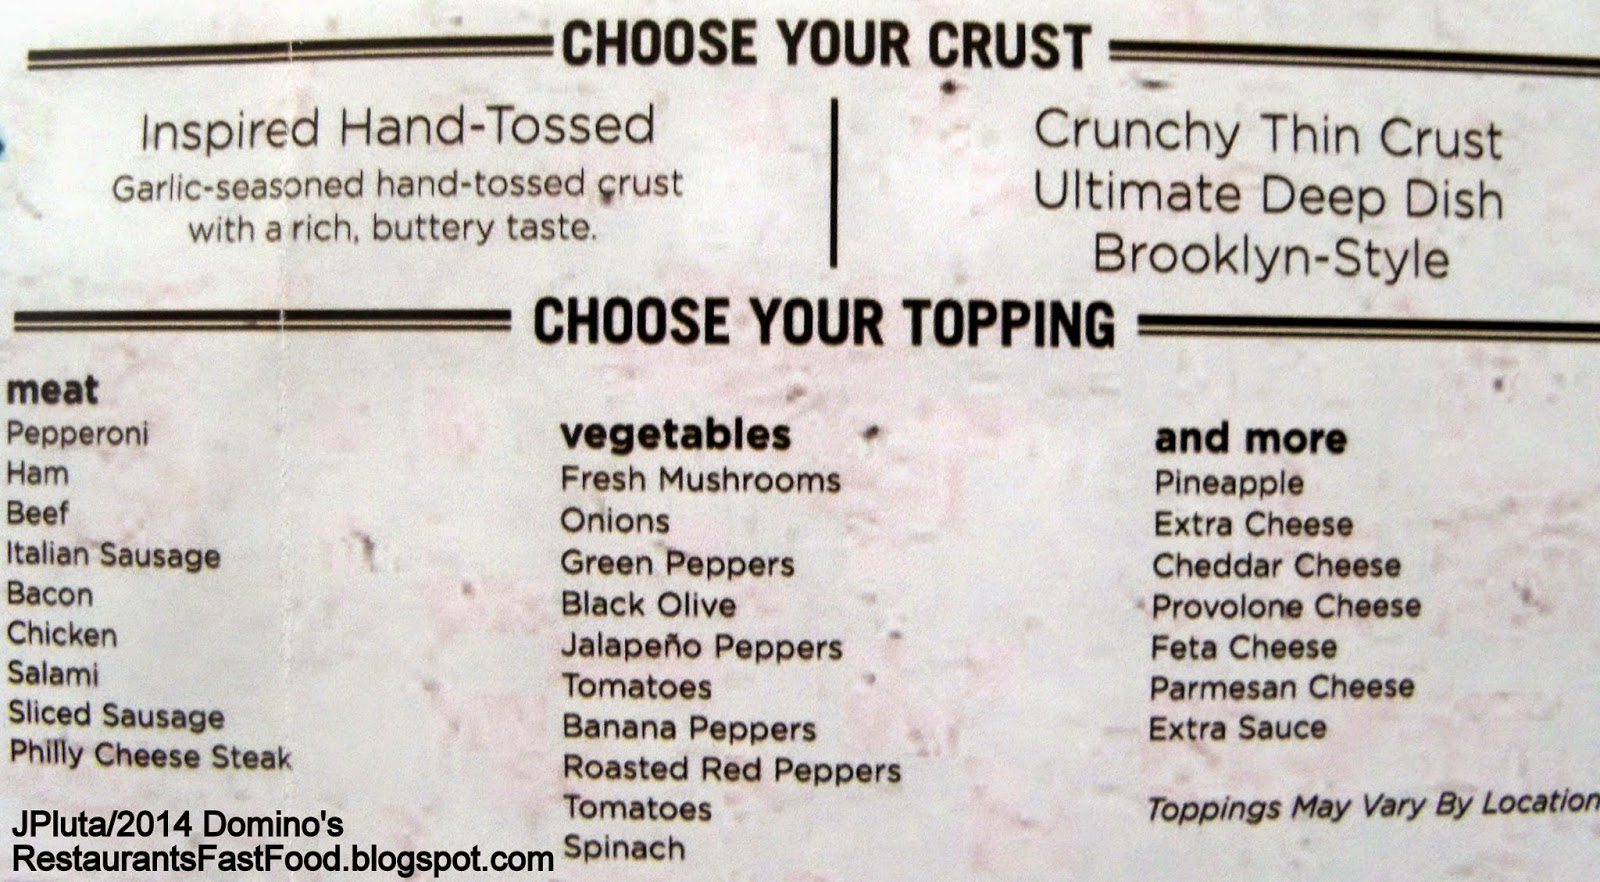 Domino's Pizza Crust Toppings